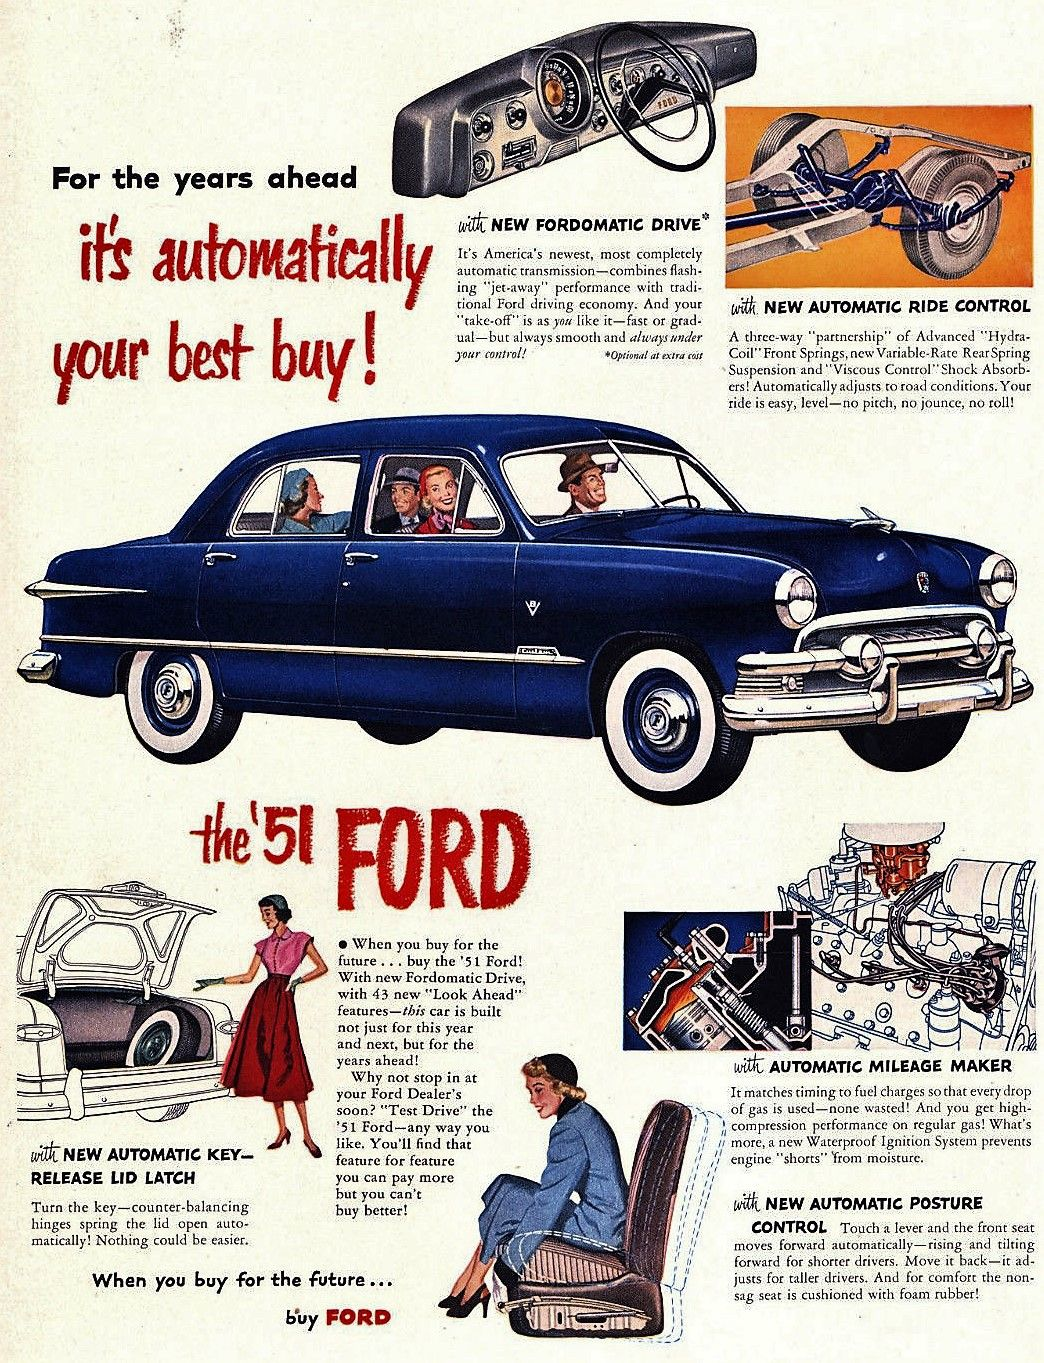 Pin by billie byerly on old ads Ford classic cars